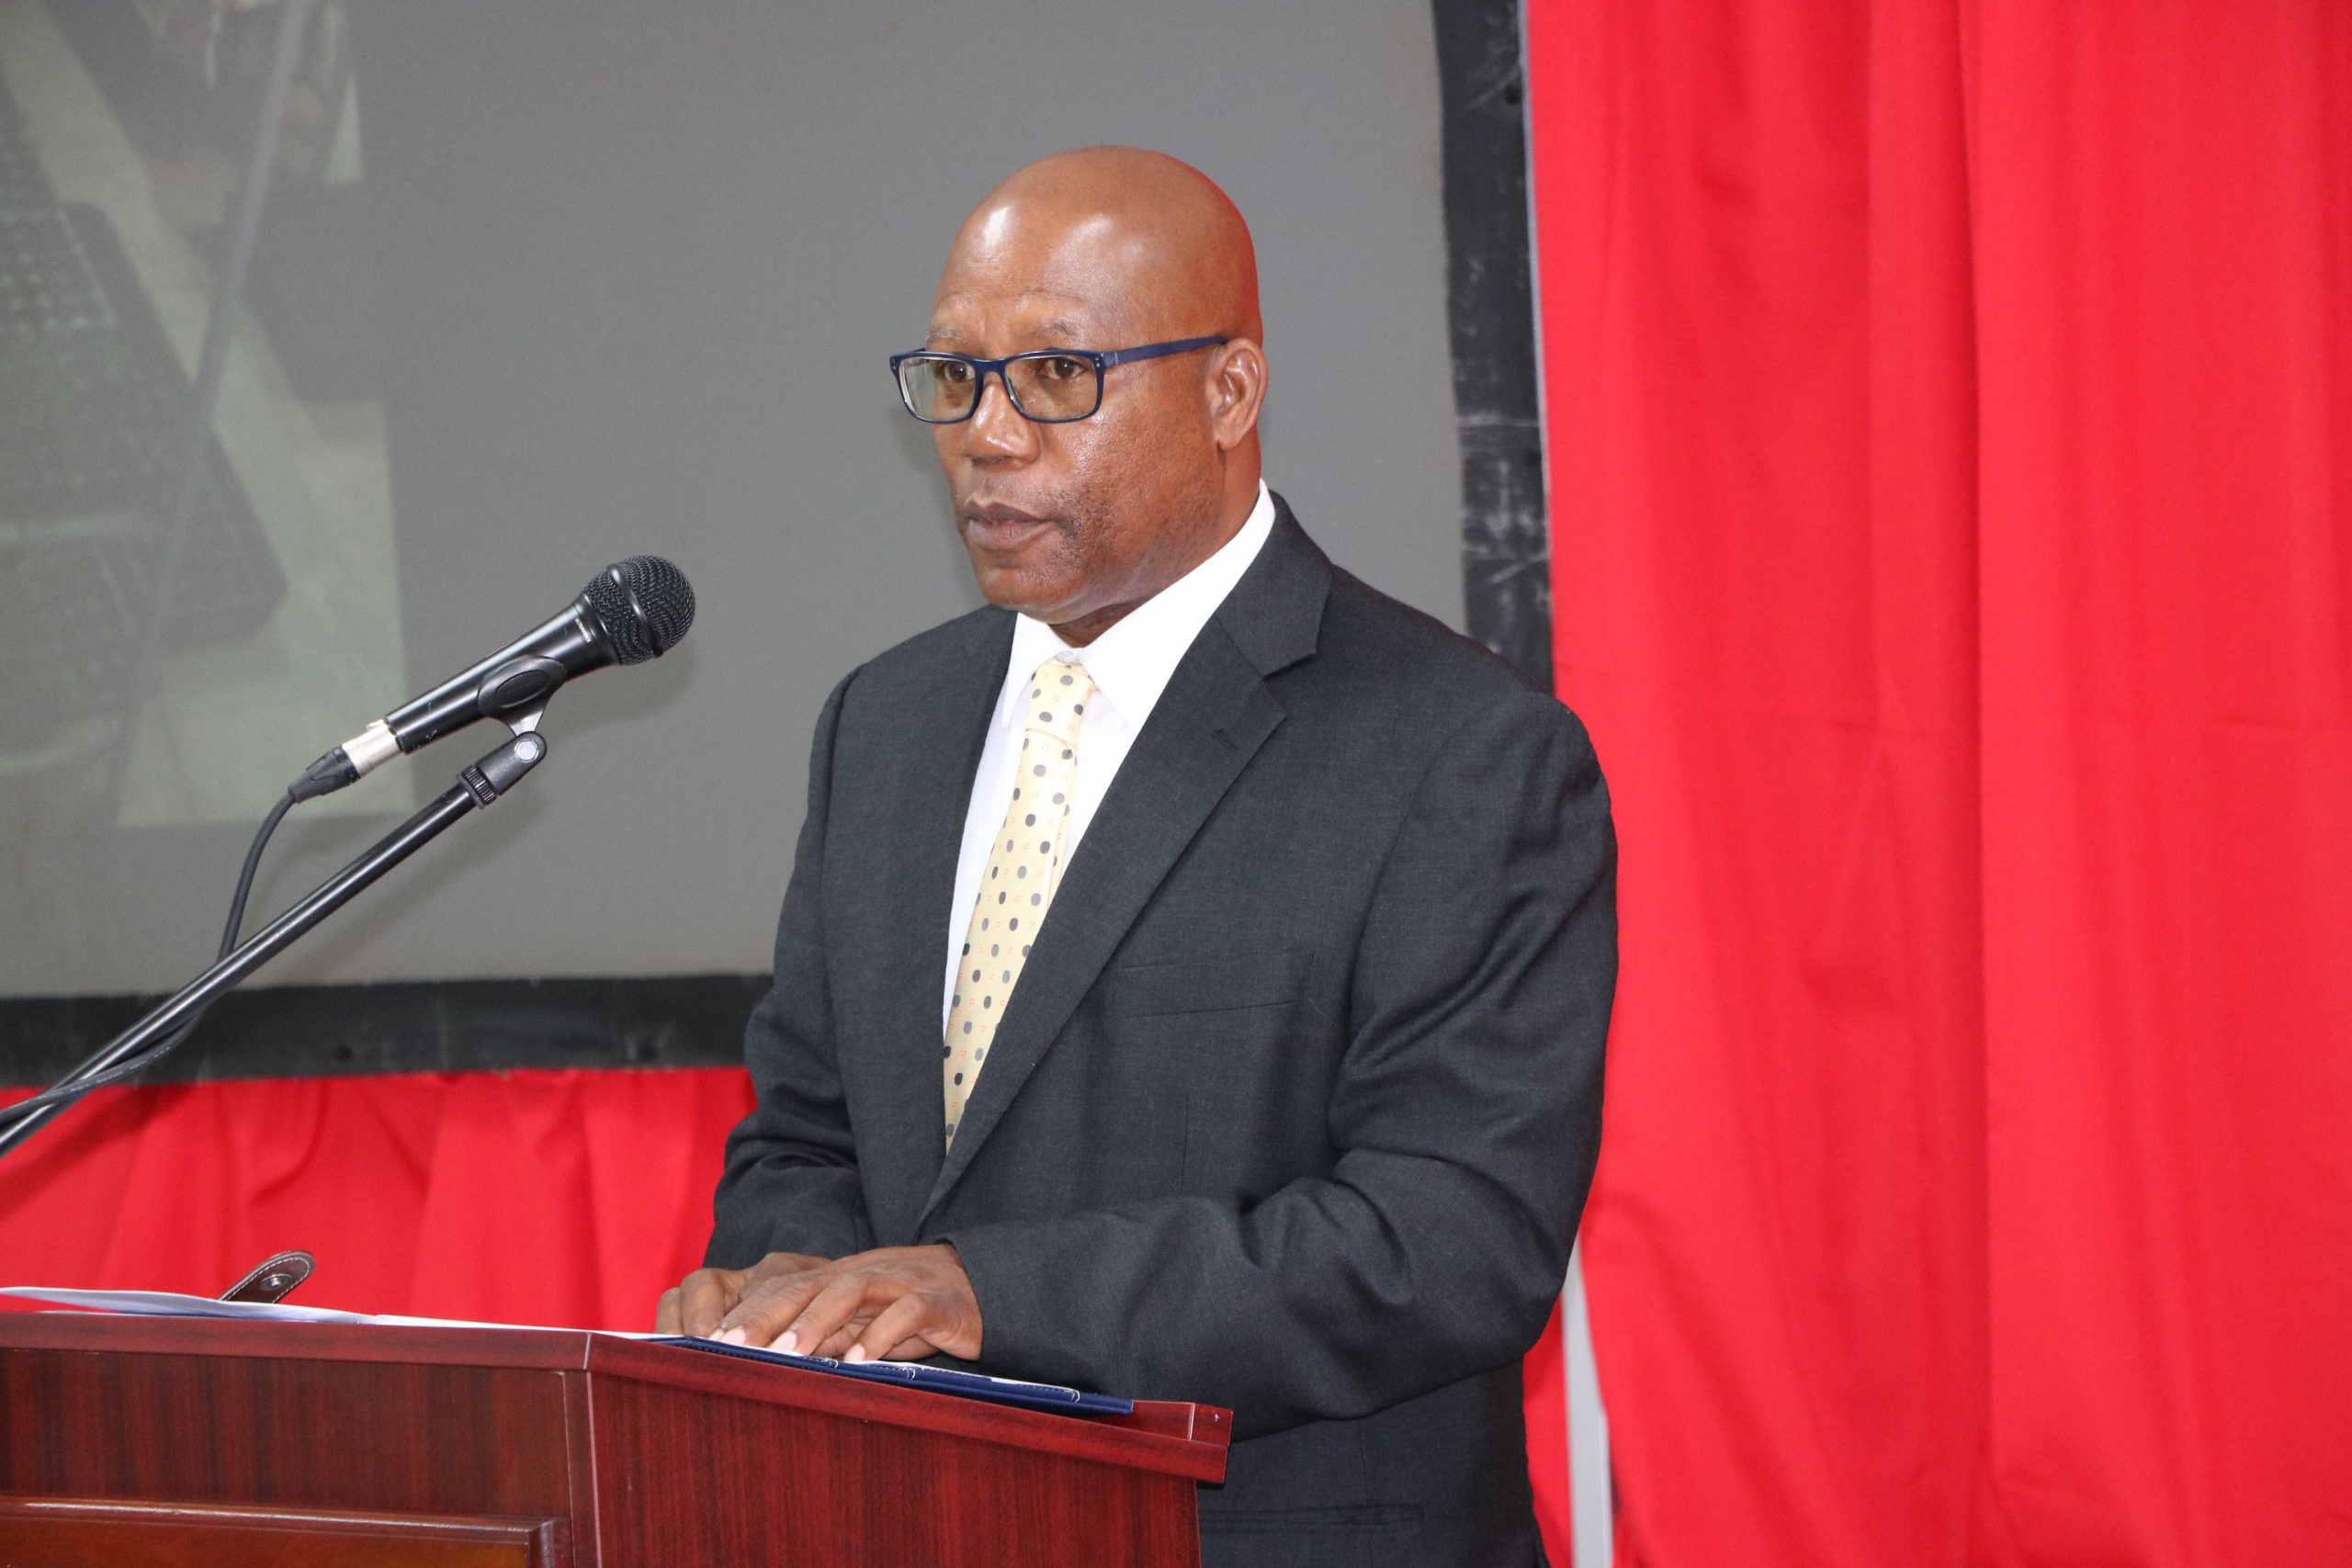 """Mr. Mc Levon """"Mackie"""" Tross, Owner and Manager of A-1Farms in Gingerland, delivering remarks as the featured speaker at the Ministry of Agriculture's Agenda 2021 forum at the St. Paul's Anglican Church Hall on January 19, 2021"""